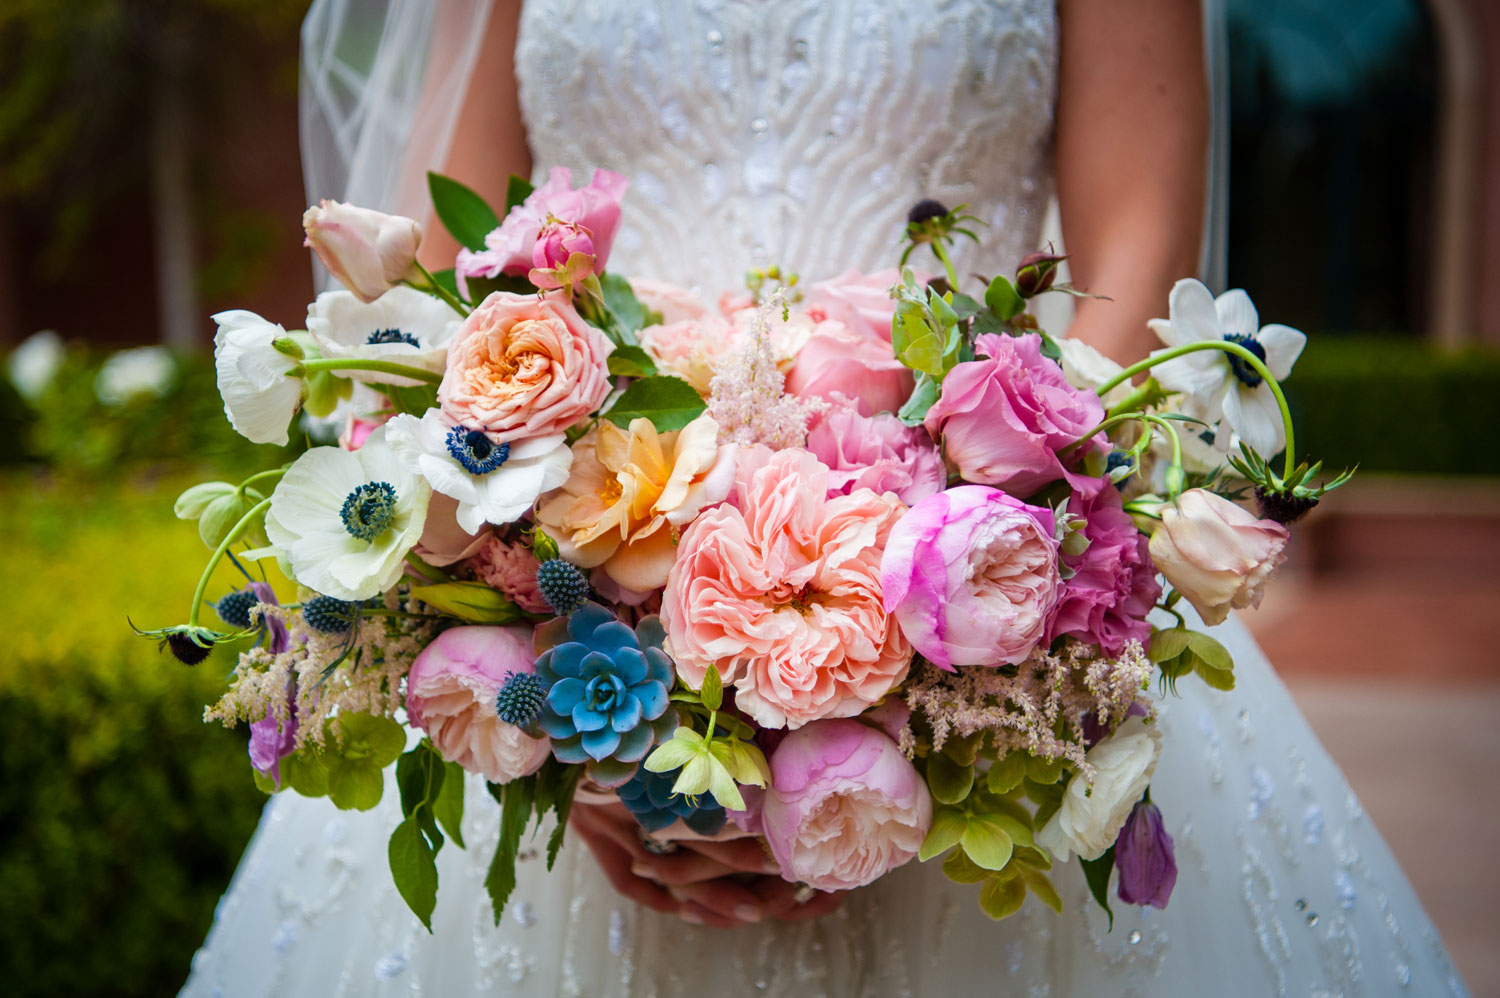 Colorful wedding bouquet ideas blue pink green yellow white